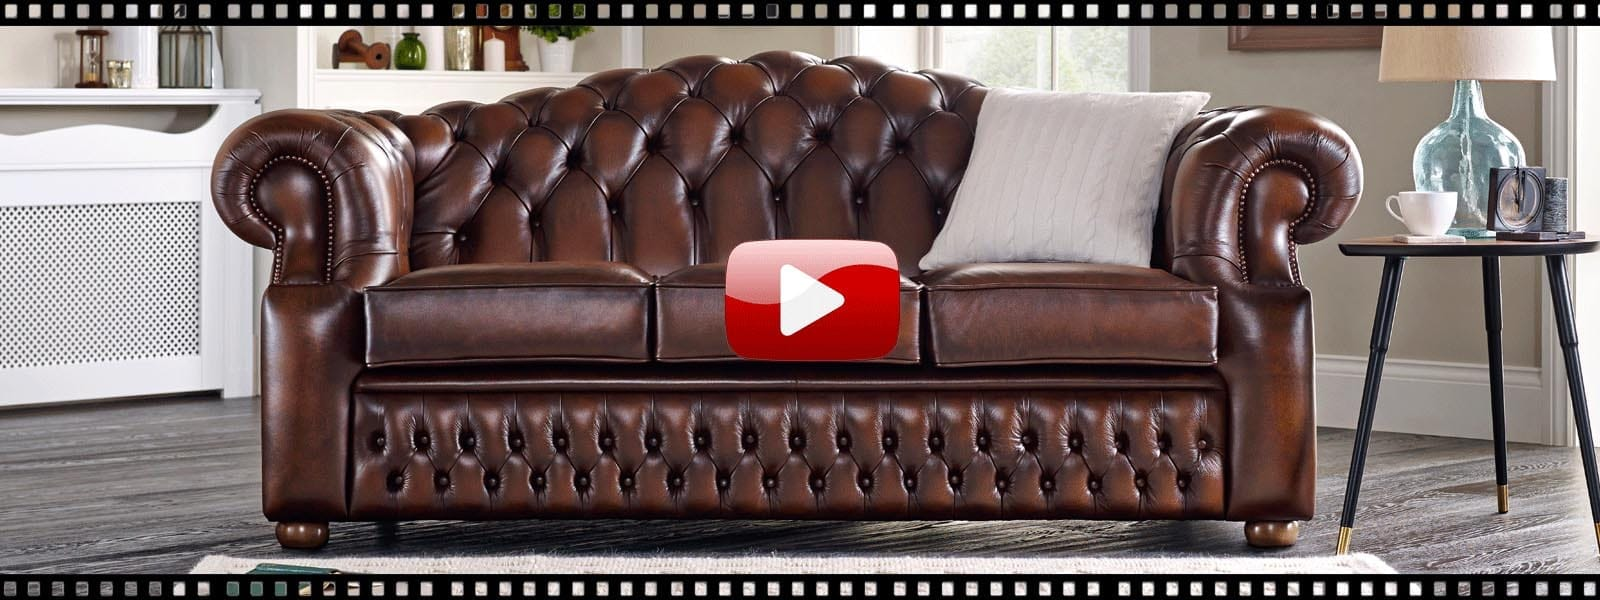 wesley allen ambiance daybed exquisite couch loveseat sleepe